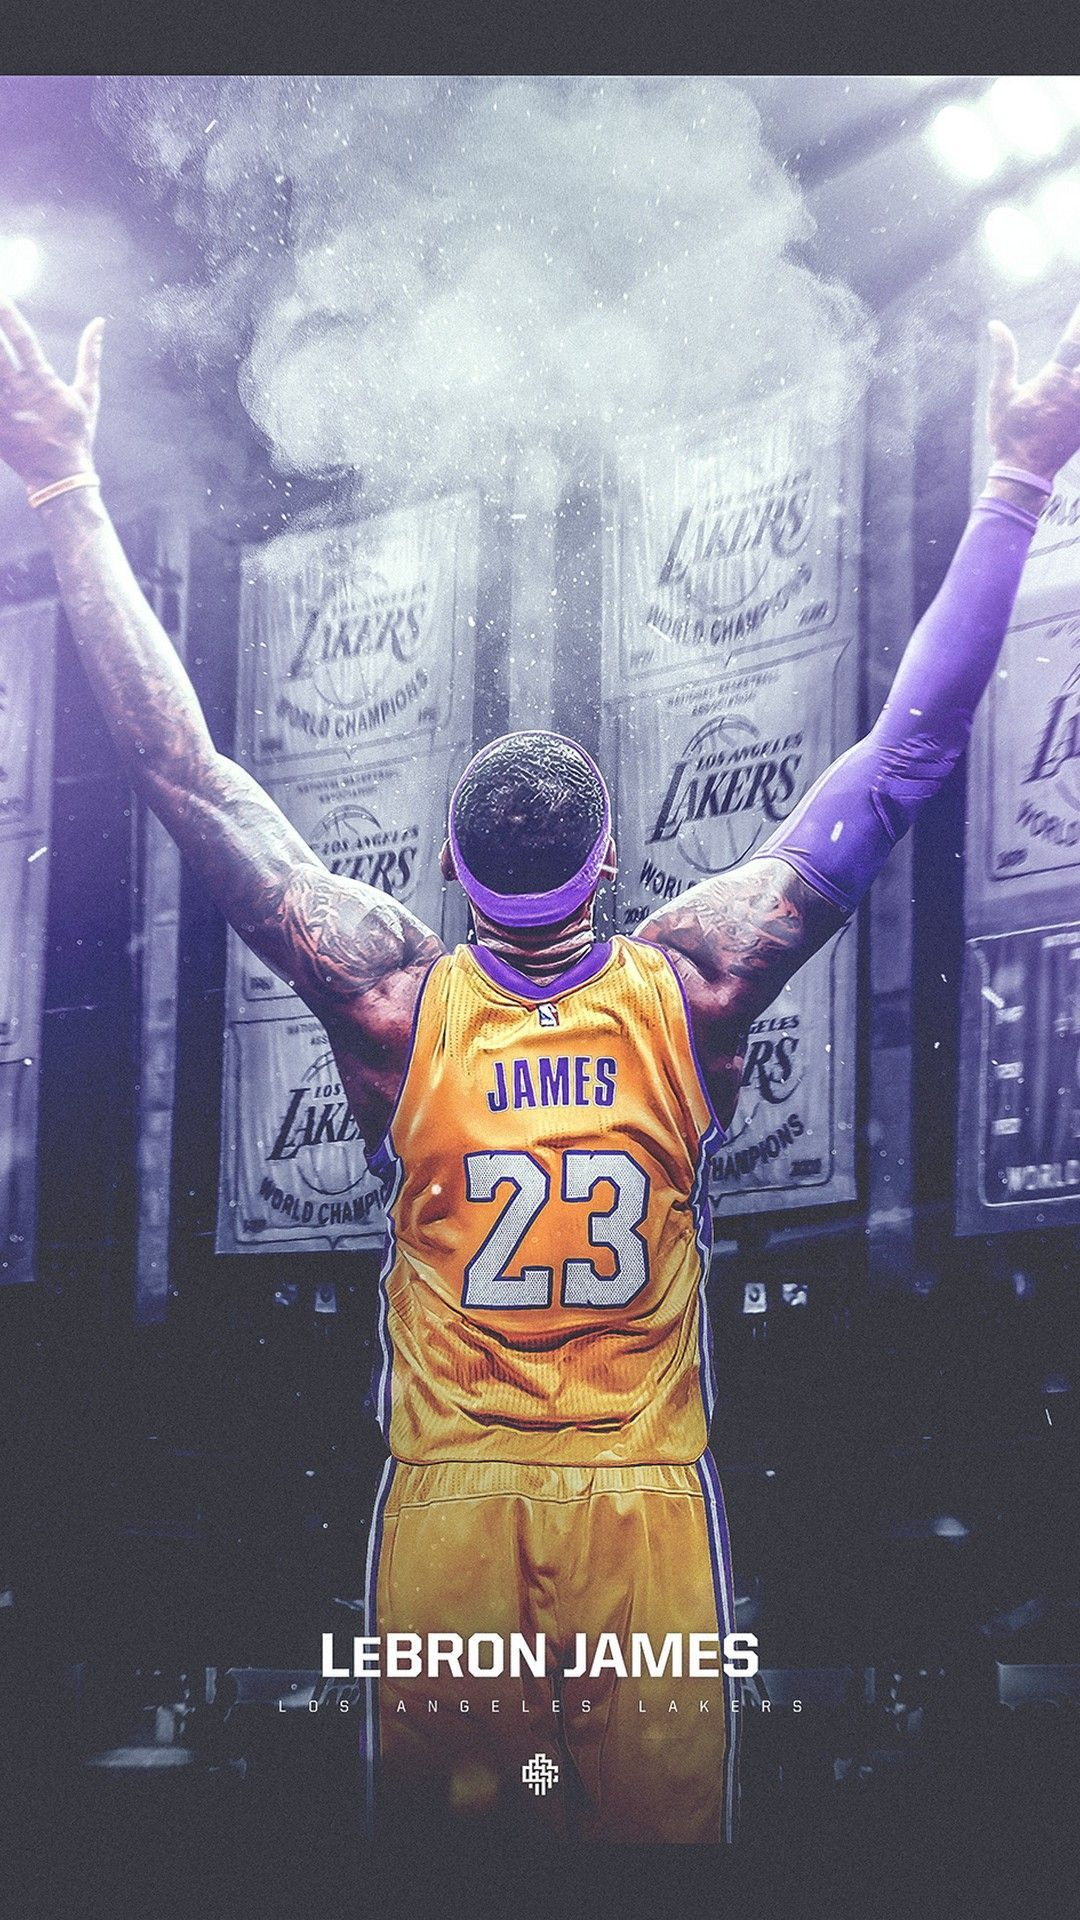 Lebron James La Lakers Hd Wallpaper For Iphone In 2020 Lebron James Wallpapers Lebron James Poster Basketball Wallpapers Hd